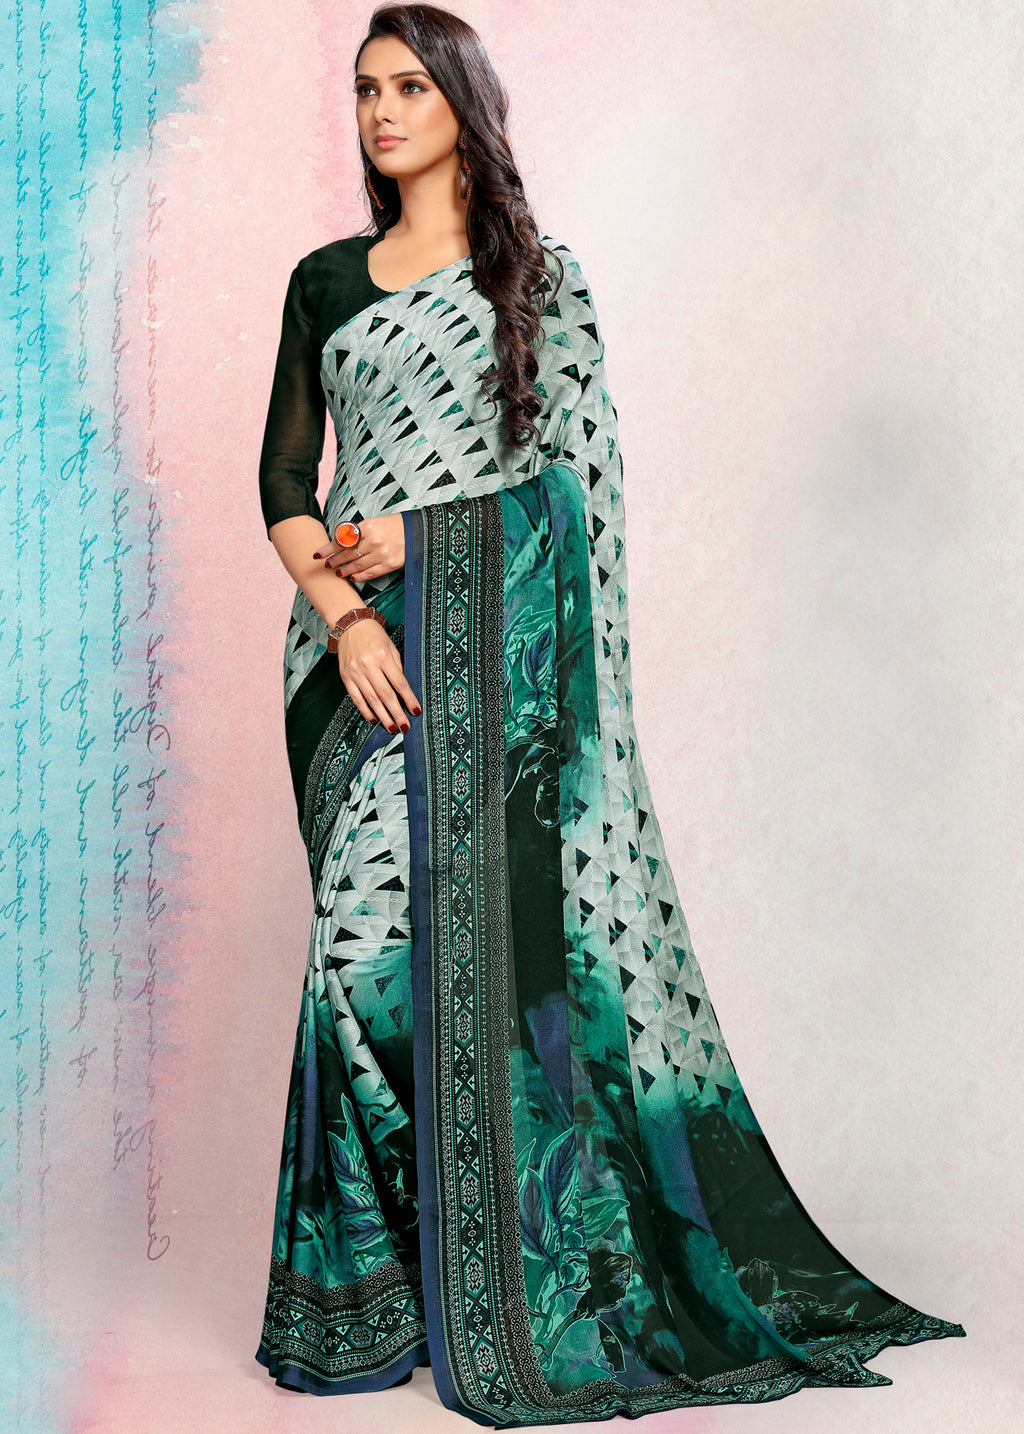 Sea Green Color Crepe Printed Kitty Party Sarees NYF-9493